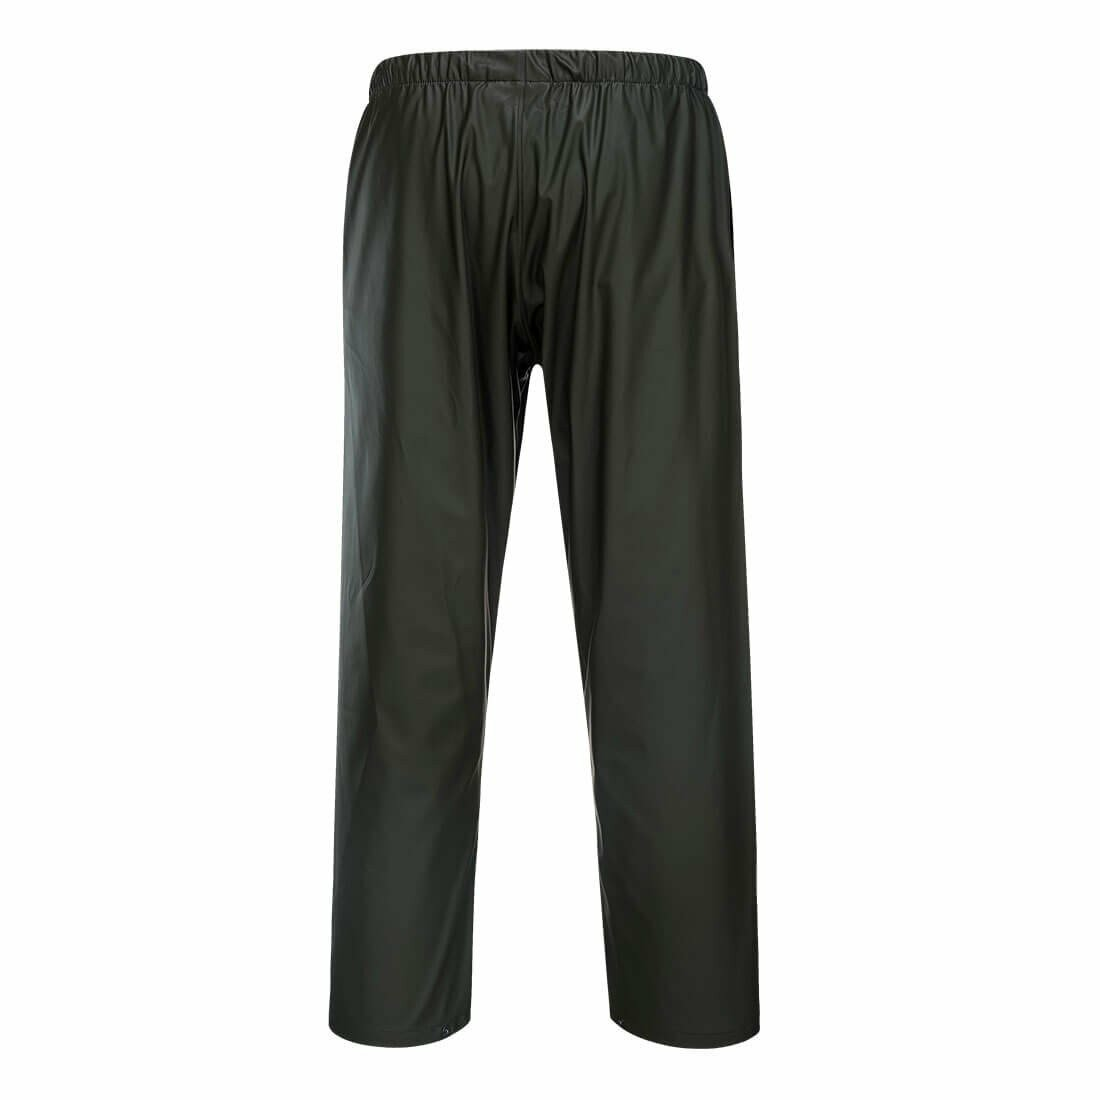 K8102 Farmers Breathable Pants